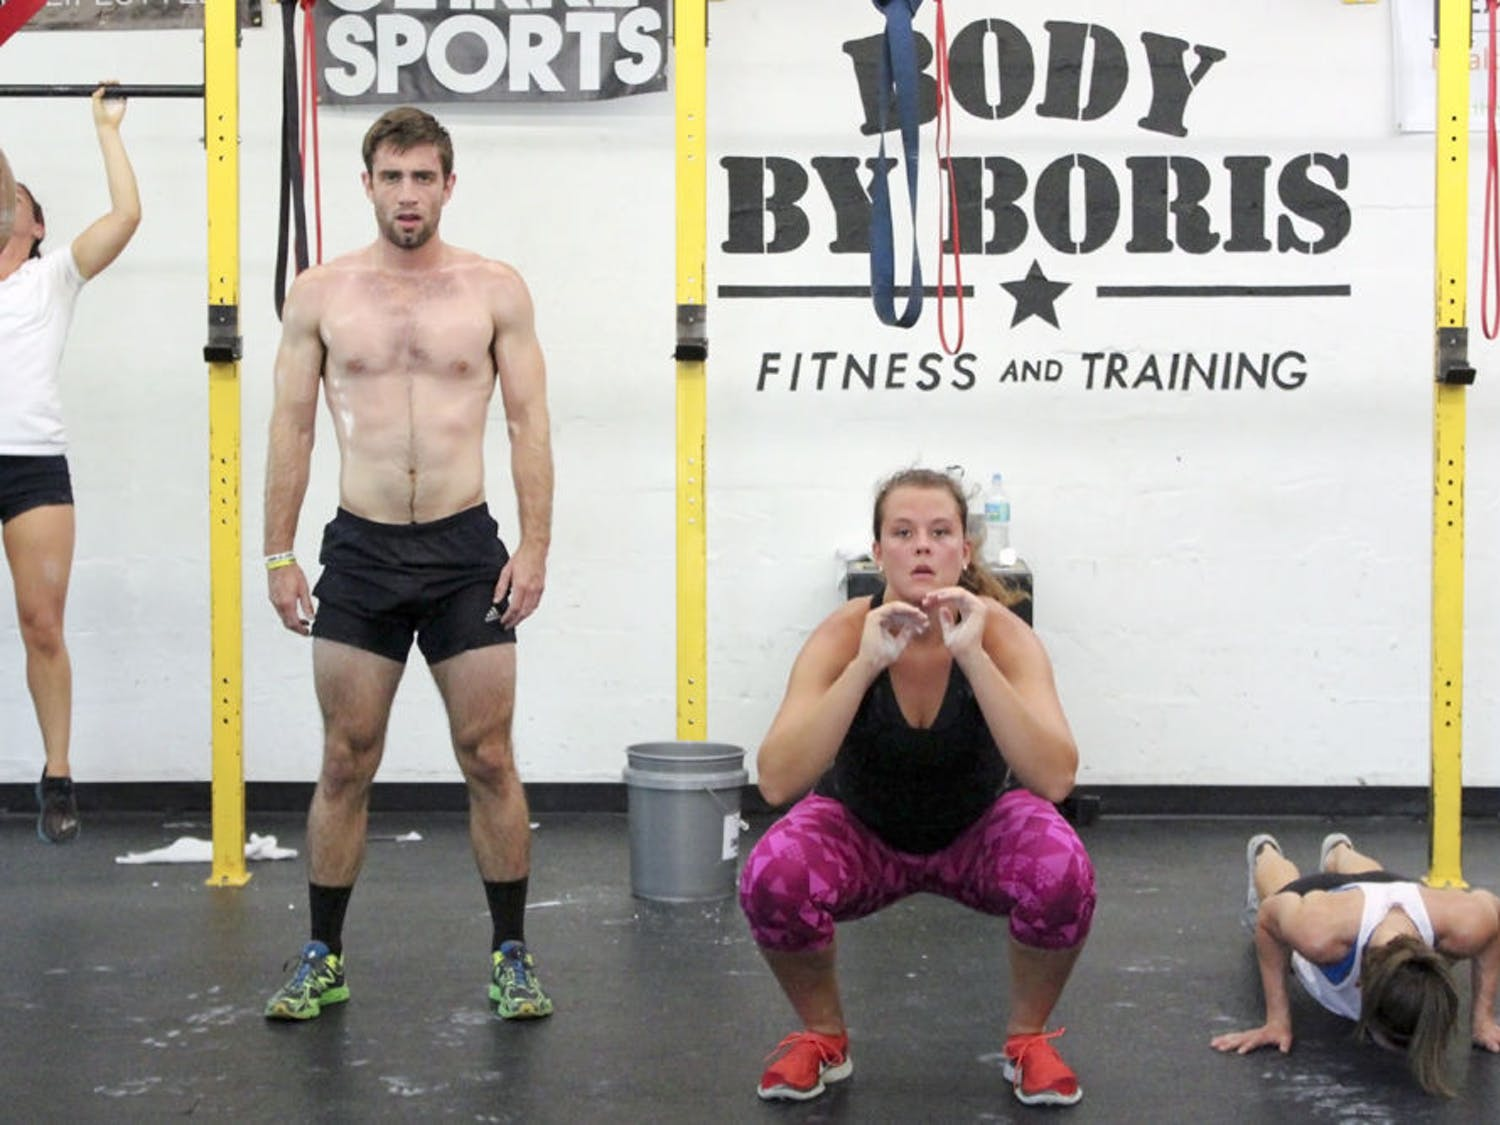 From left: Hunter Wyatt, 24, Samantha Mauder, 22, and Chloe Herring, 23, perform various exercises at the Memorial Day Murph event put on by Body By Boris, 1527 NW 6th St., on Monday. The event benefitted the Jonathan Cote Memorial Scholarships, which helps veteran UF and Santa Fe students pay for books and tuition.